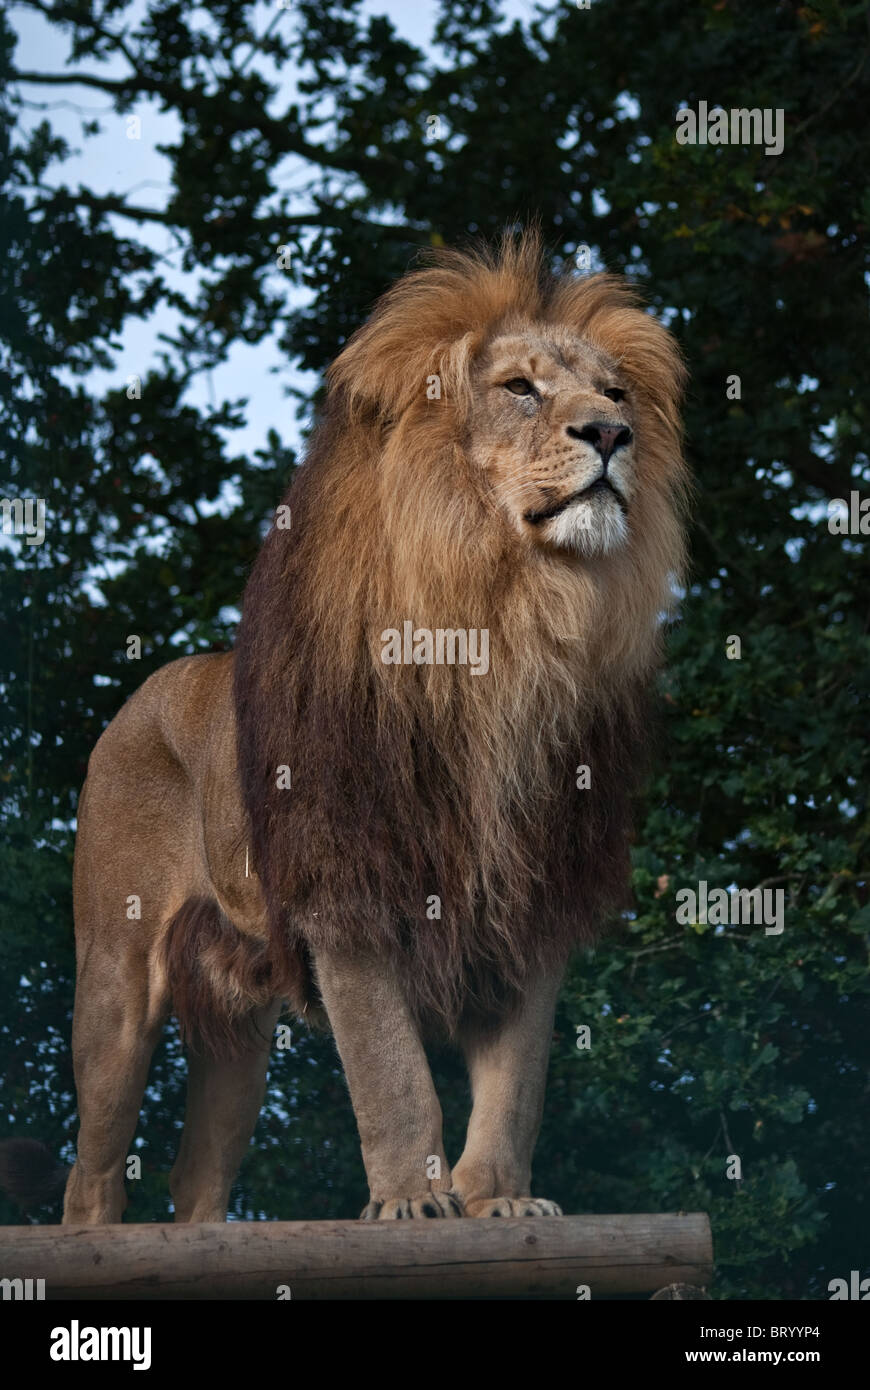 Male Lion - Stock Image